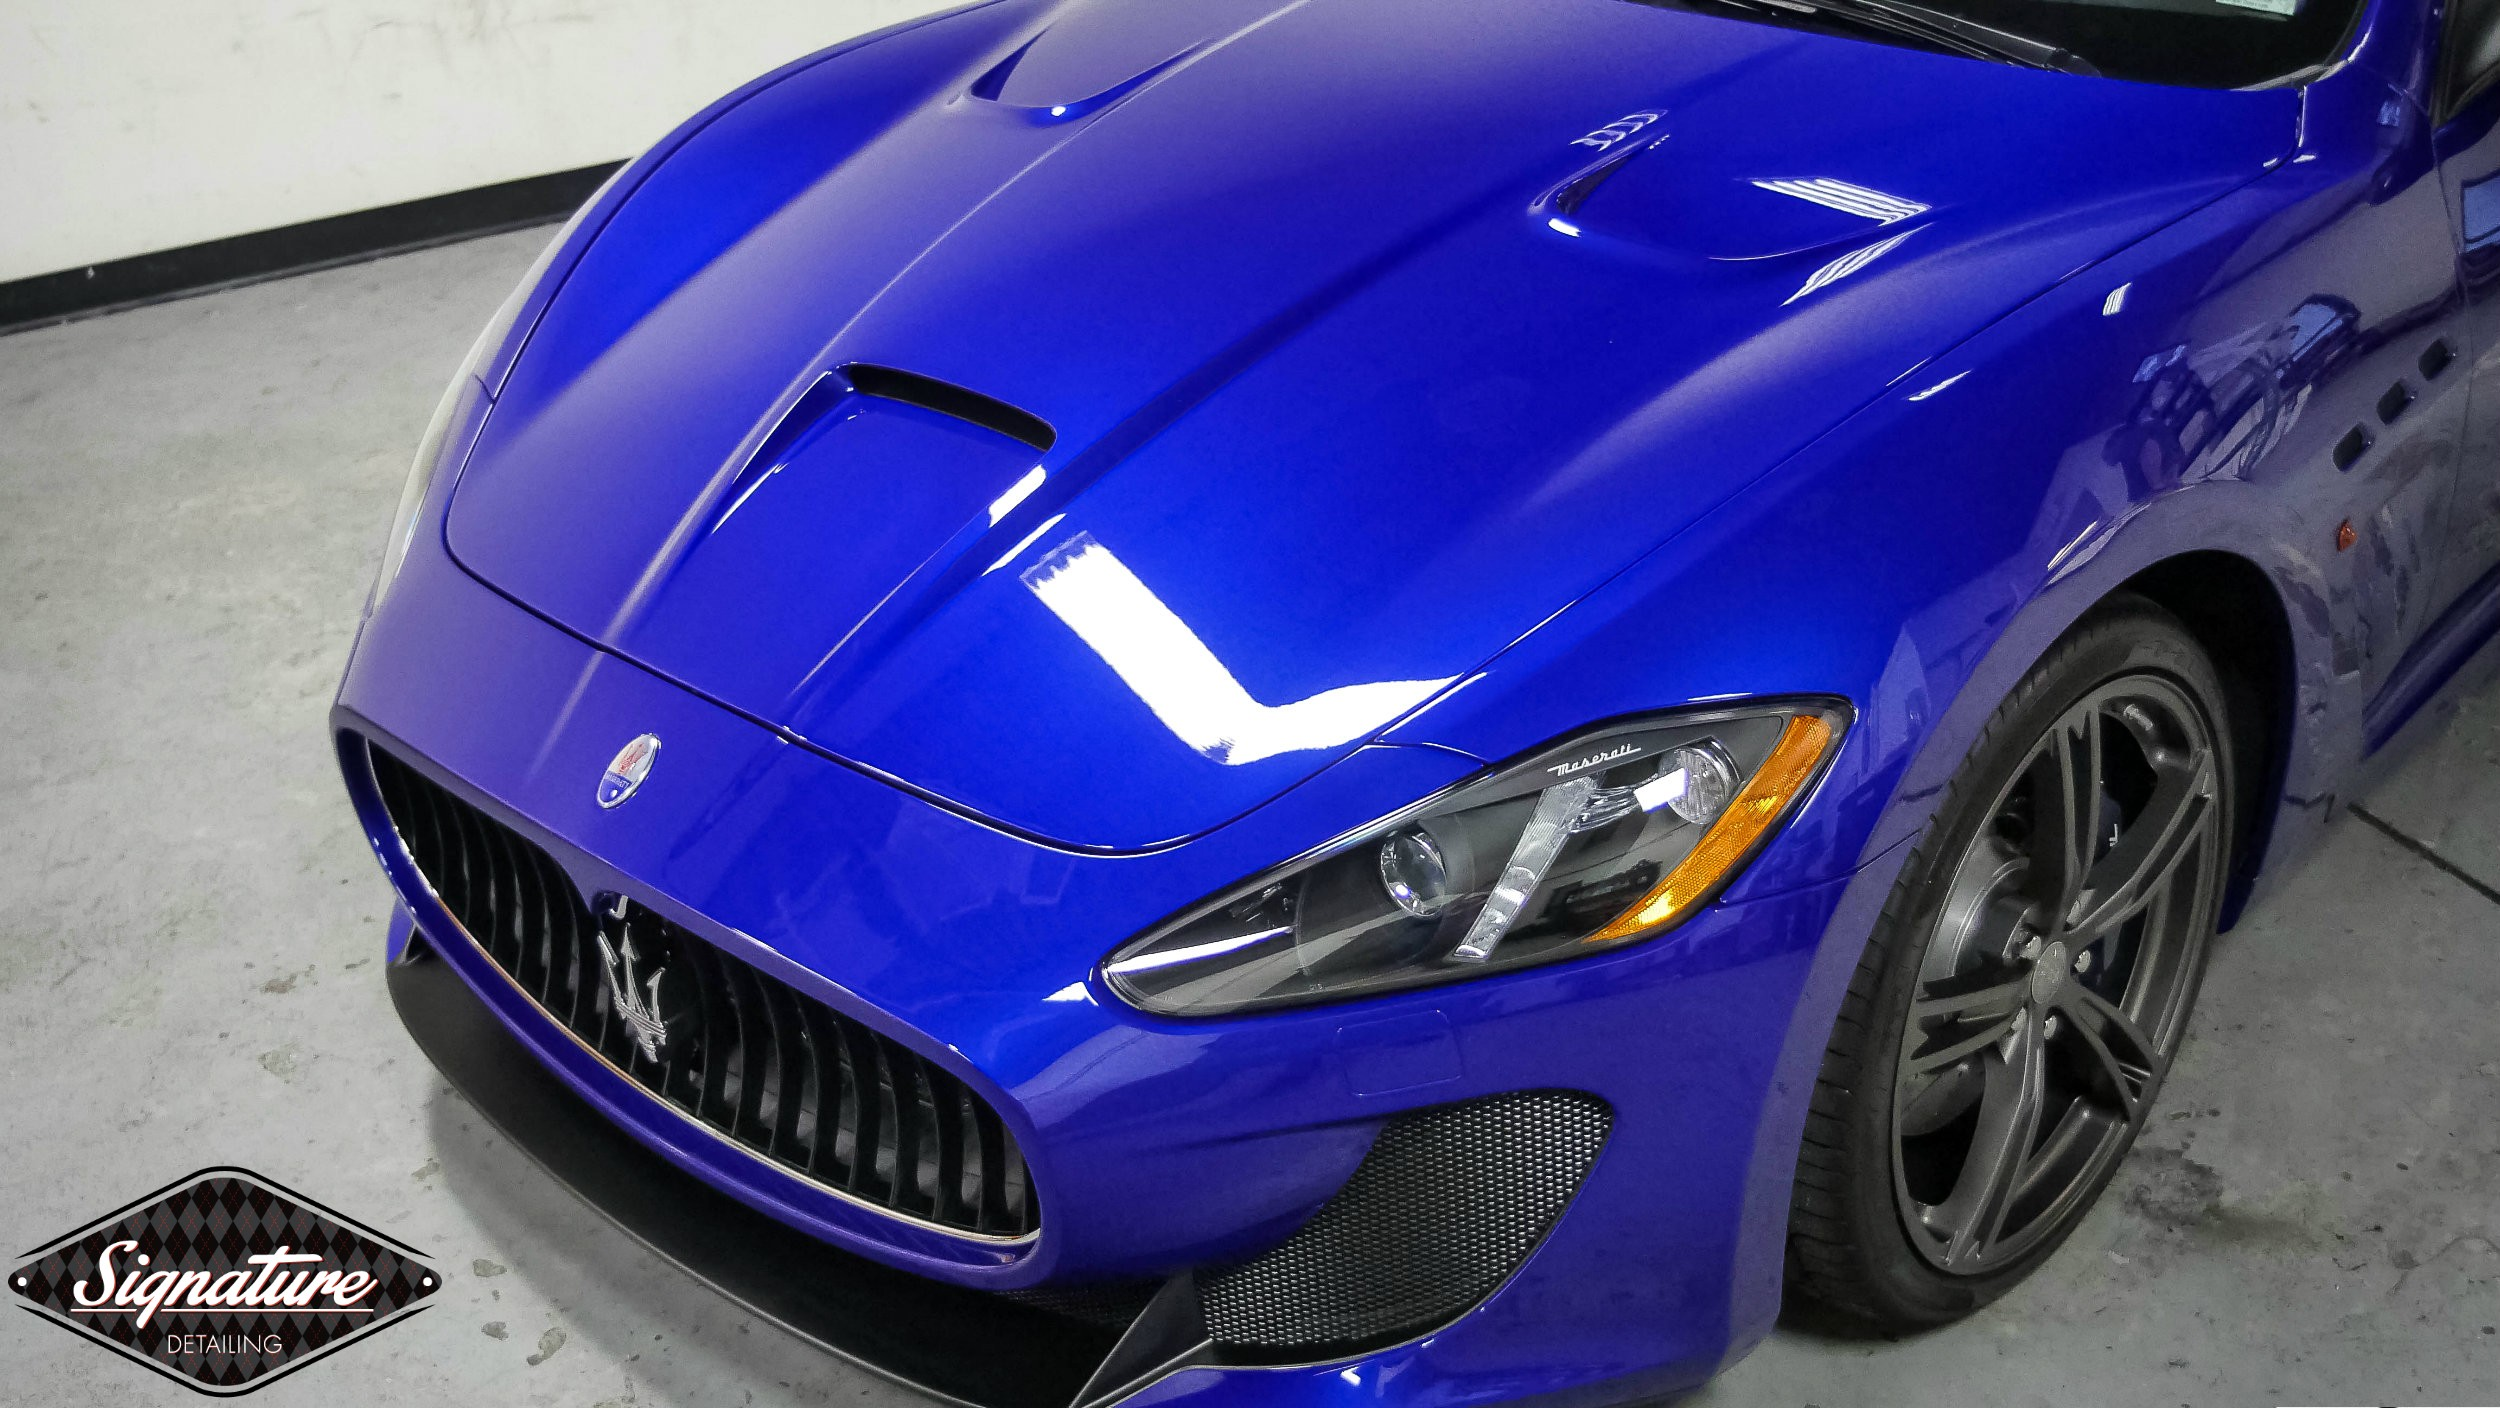 Signature Detailing - CQuartz FINEST New Jersey - Maserati Ceramic Paint Coating